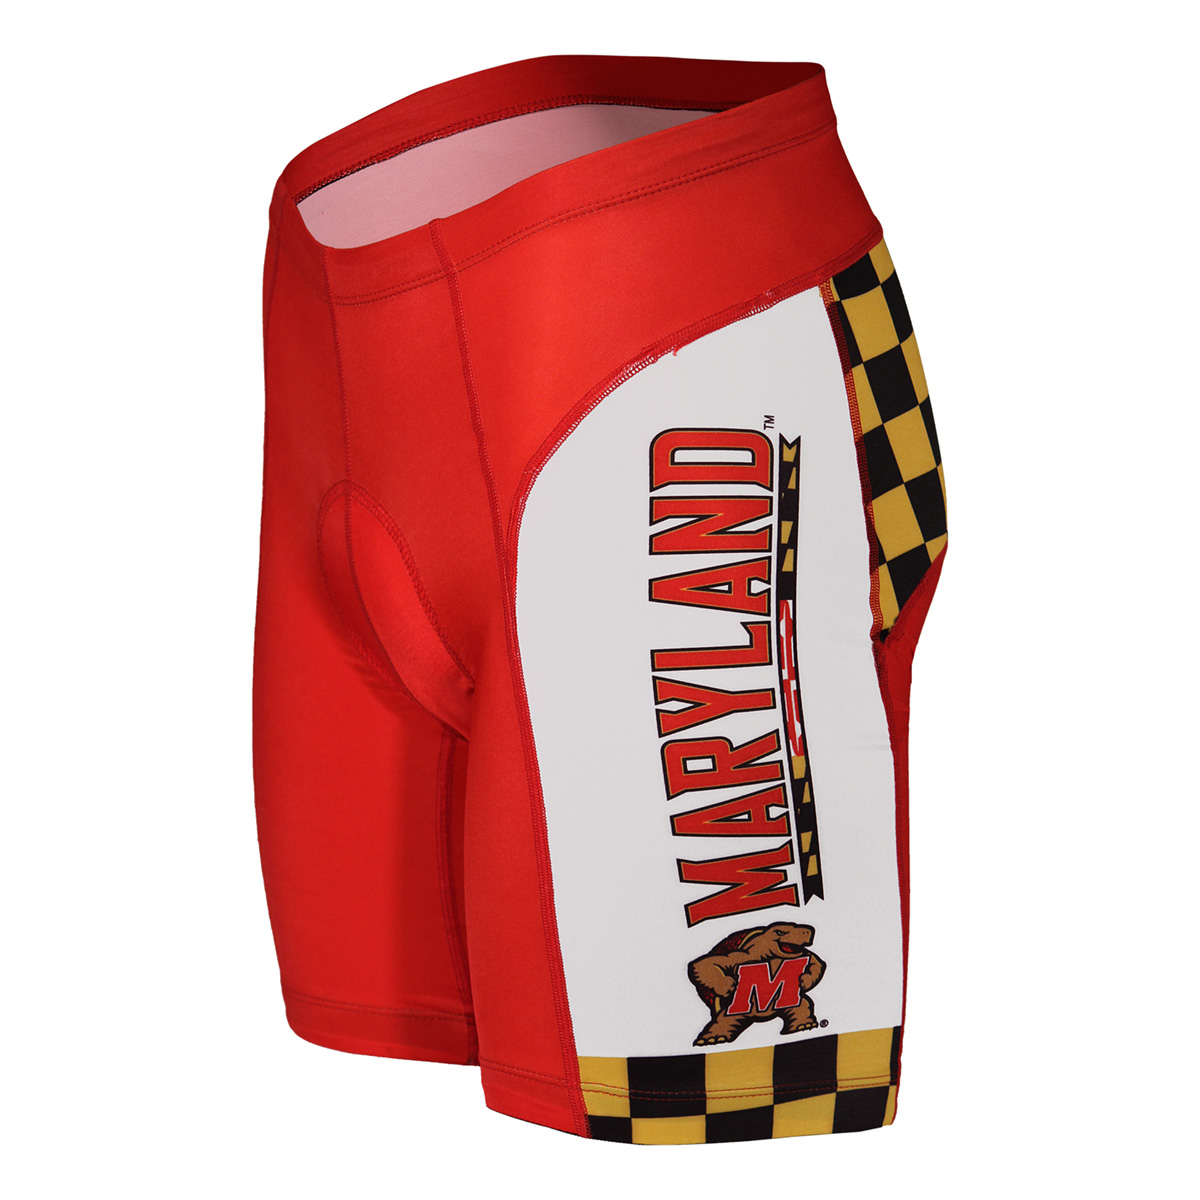 Adrenaline Promotions University of Maryland Terrapins Cycling Shorts (University of Maryland Terrapins - S)